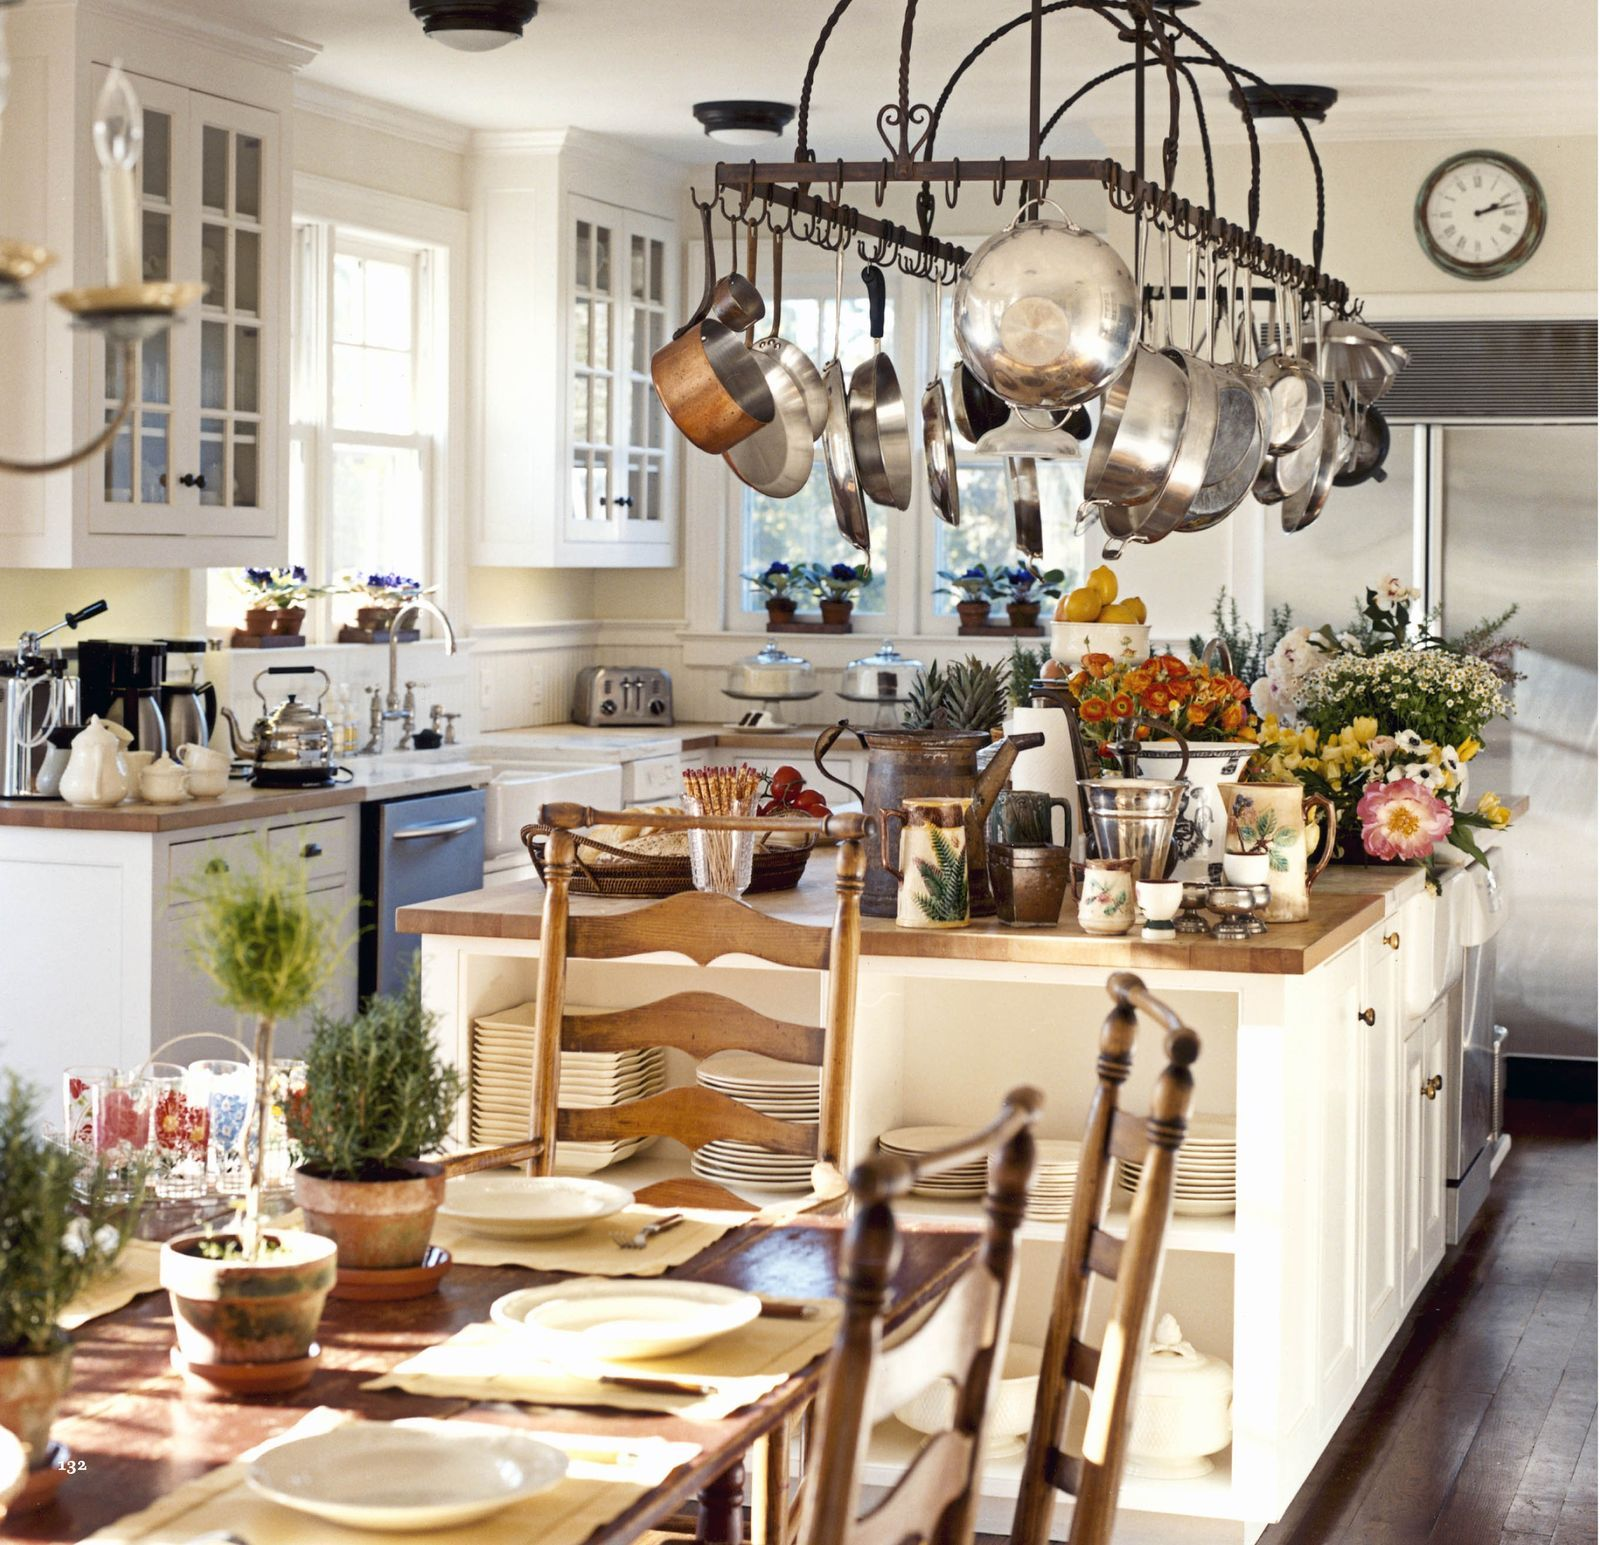 13 Kitchen Island Upgrades That Would Change Everything ...